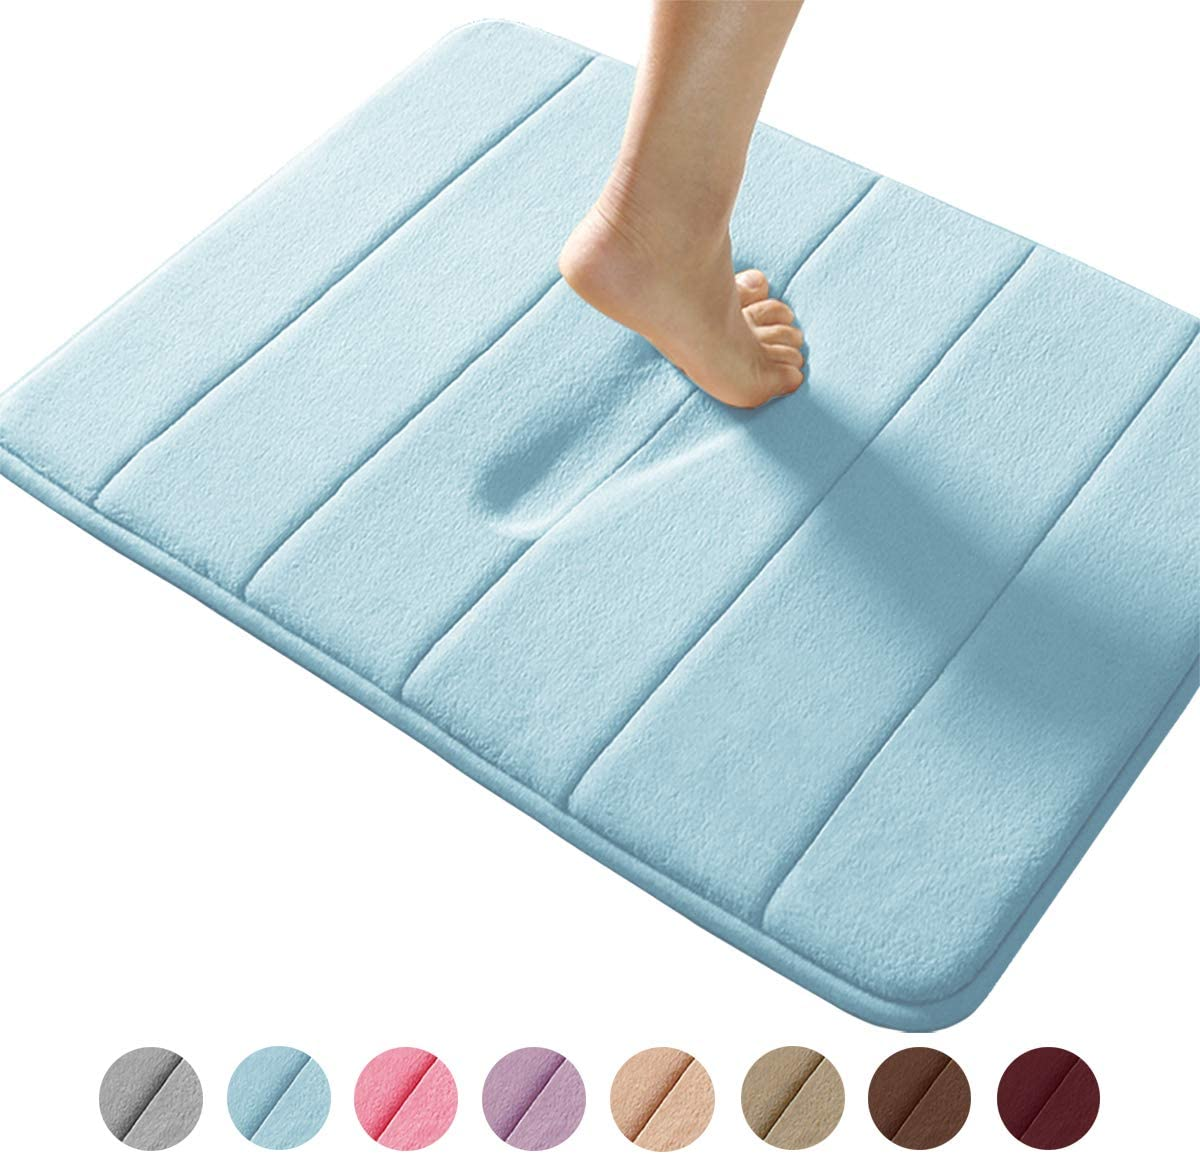 Memory Foam Bath Mat Coral Velvet/Super Non-Slip/Rapid Water Absorption/Soft and Comfortable/Easier to Dry/Machine Wash Bathroom Mat 17 X 24 inches Coffee